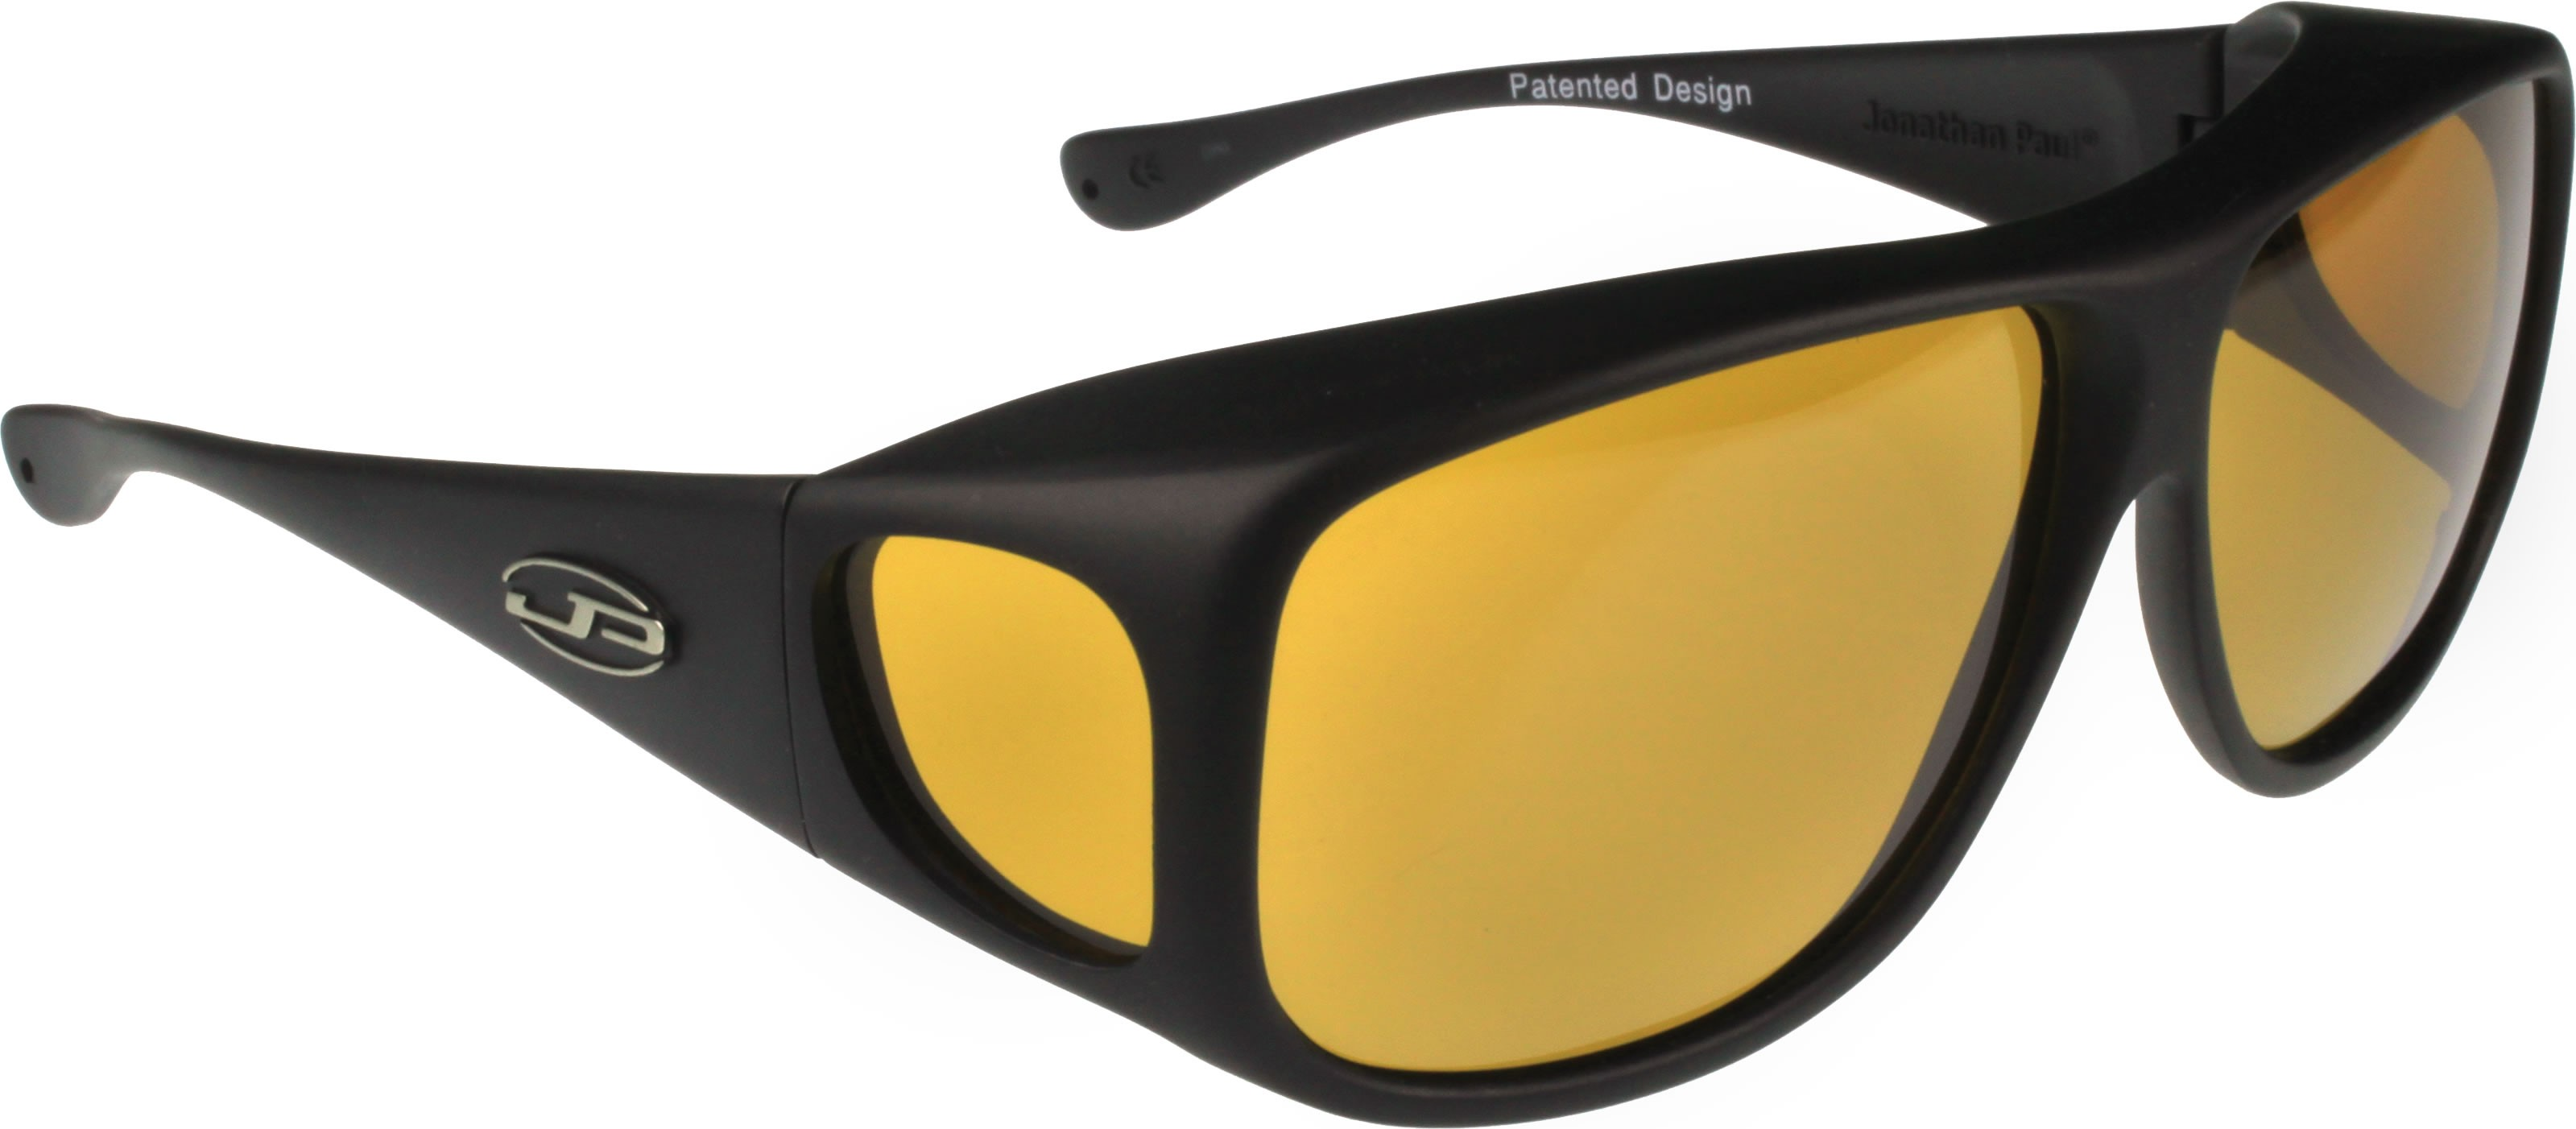 7c58511018f Fitovers Eyewear Sunglasses - Aviator - X Large - Fits Over Frames ...